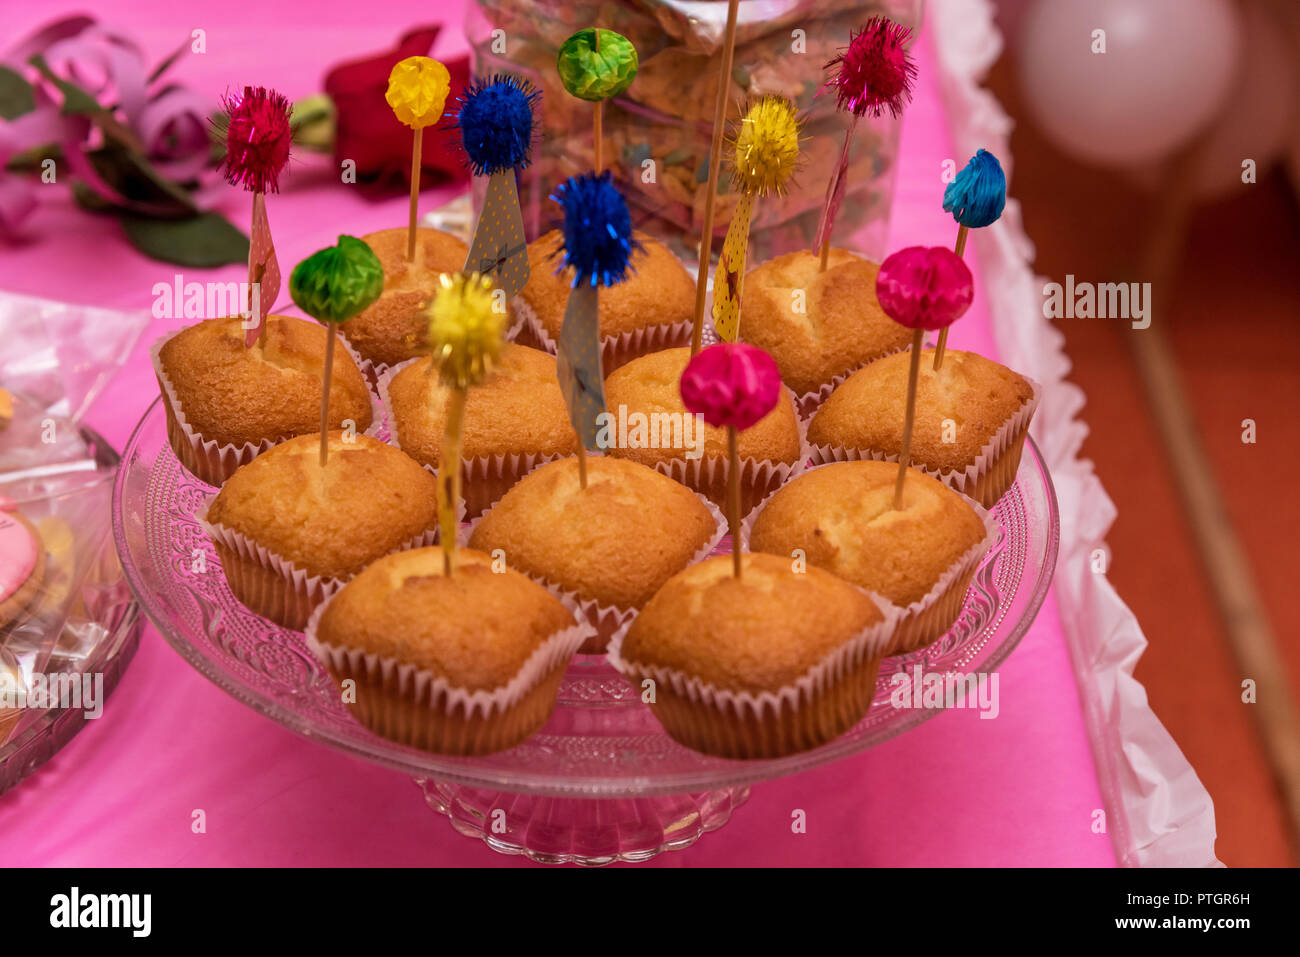 Food Baking And Holidays Concept Cupcakes Or Muffins With